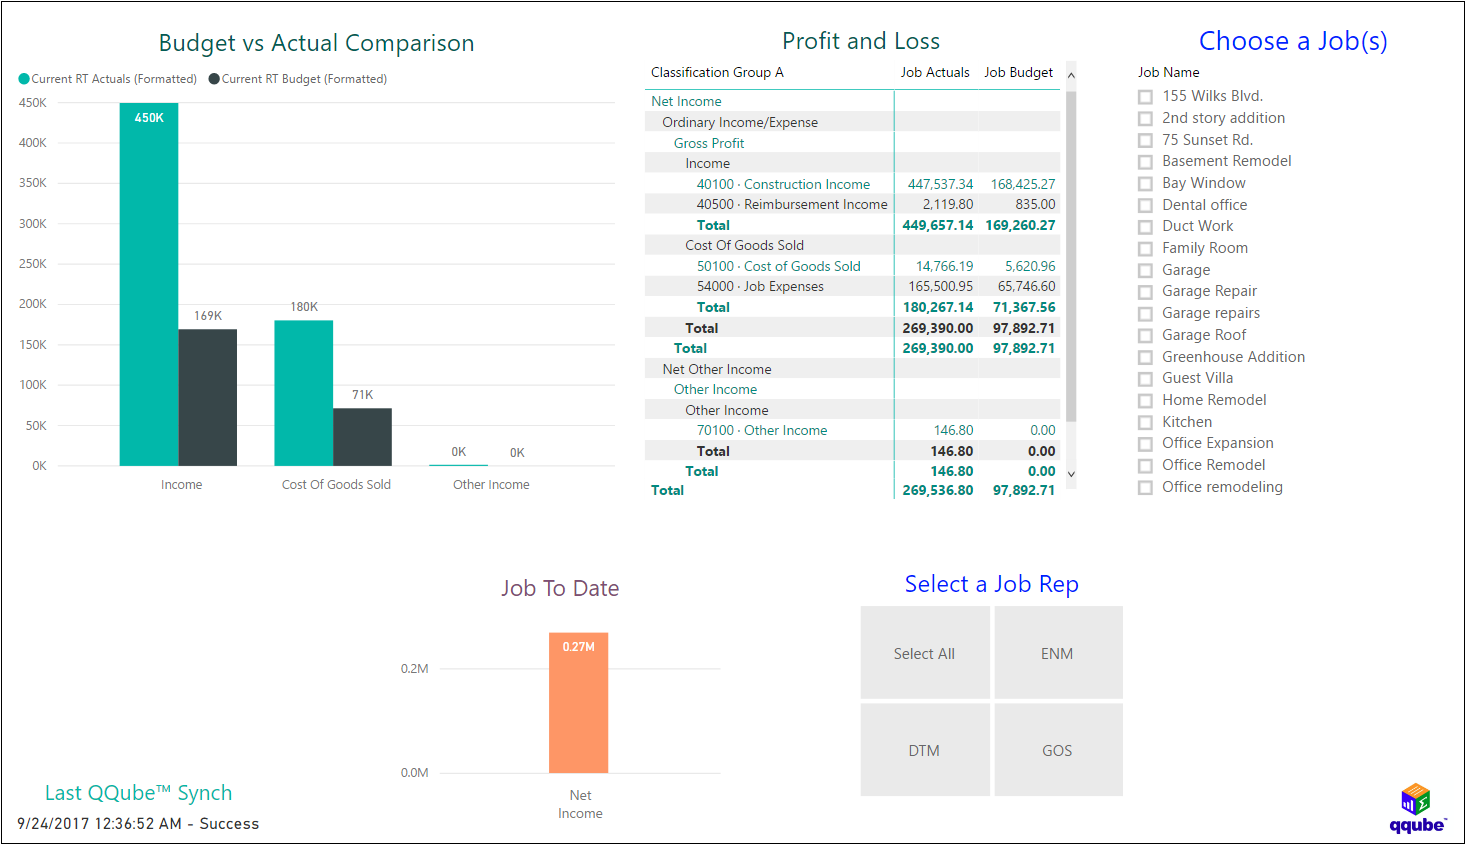 QQube and Power BI - Profit and Loss by Job